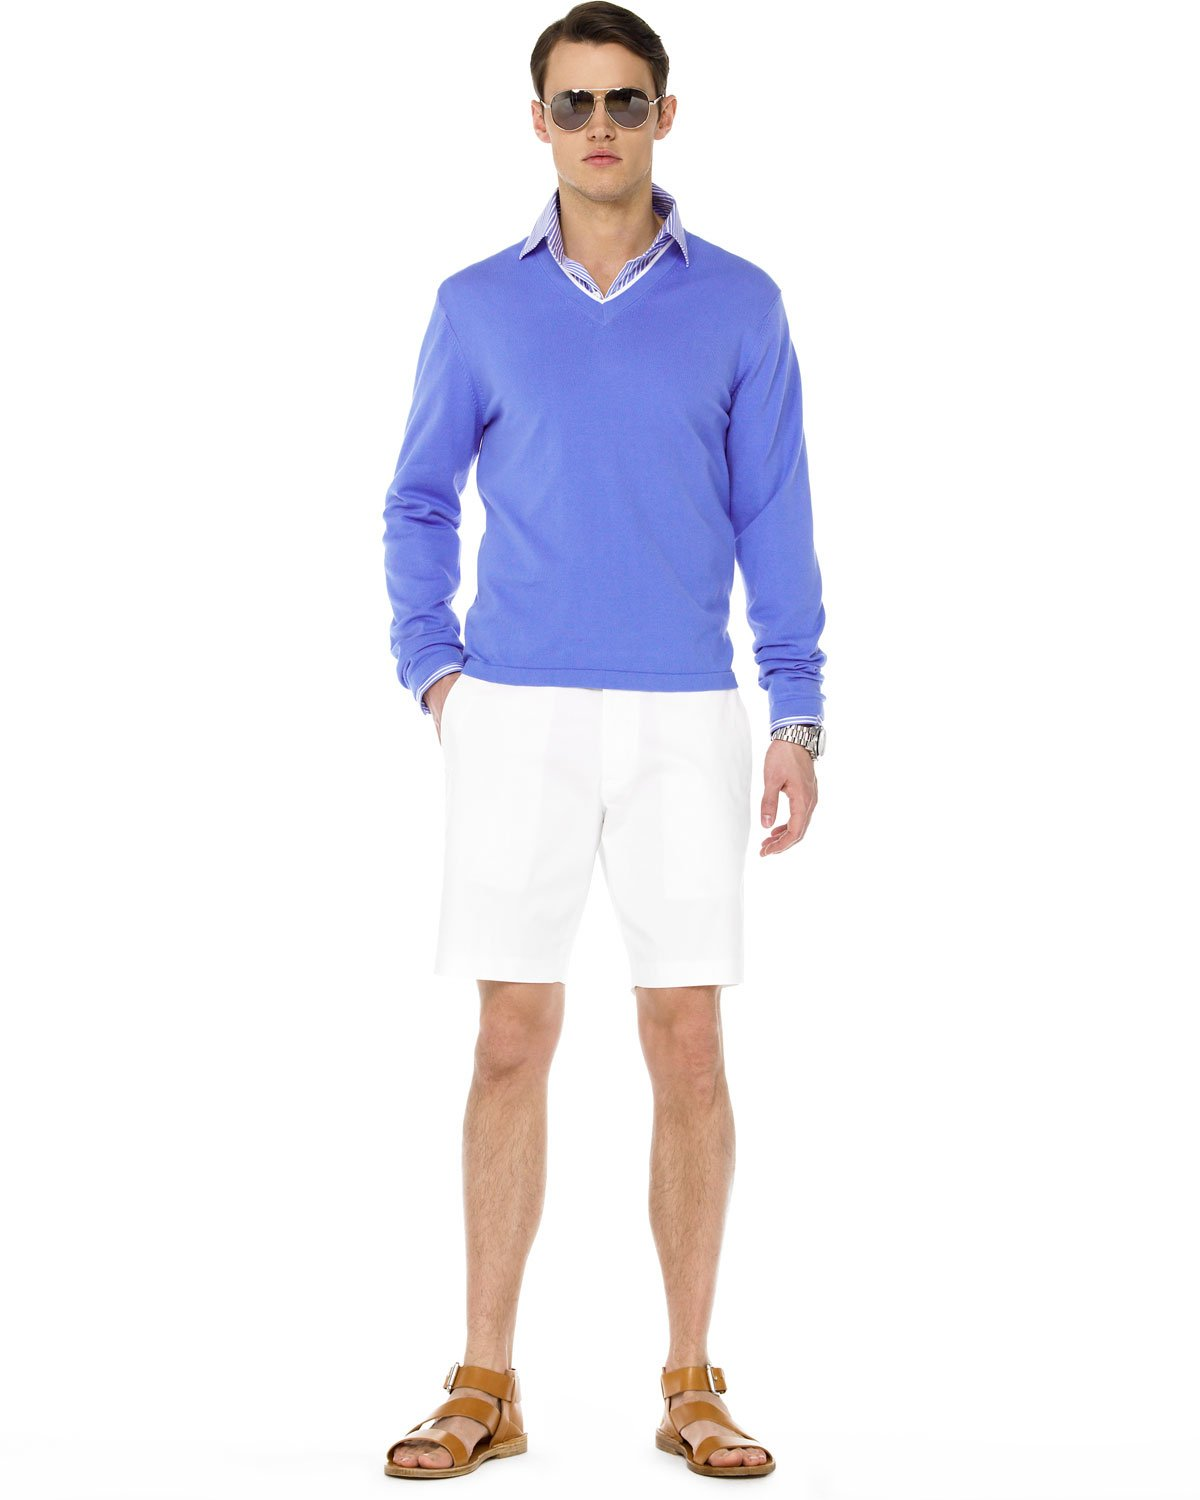 michael kors tipped cotton sweater in blue for men lyst. Black Bedroom Furniture Sets. Home Design Ideas